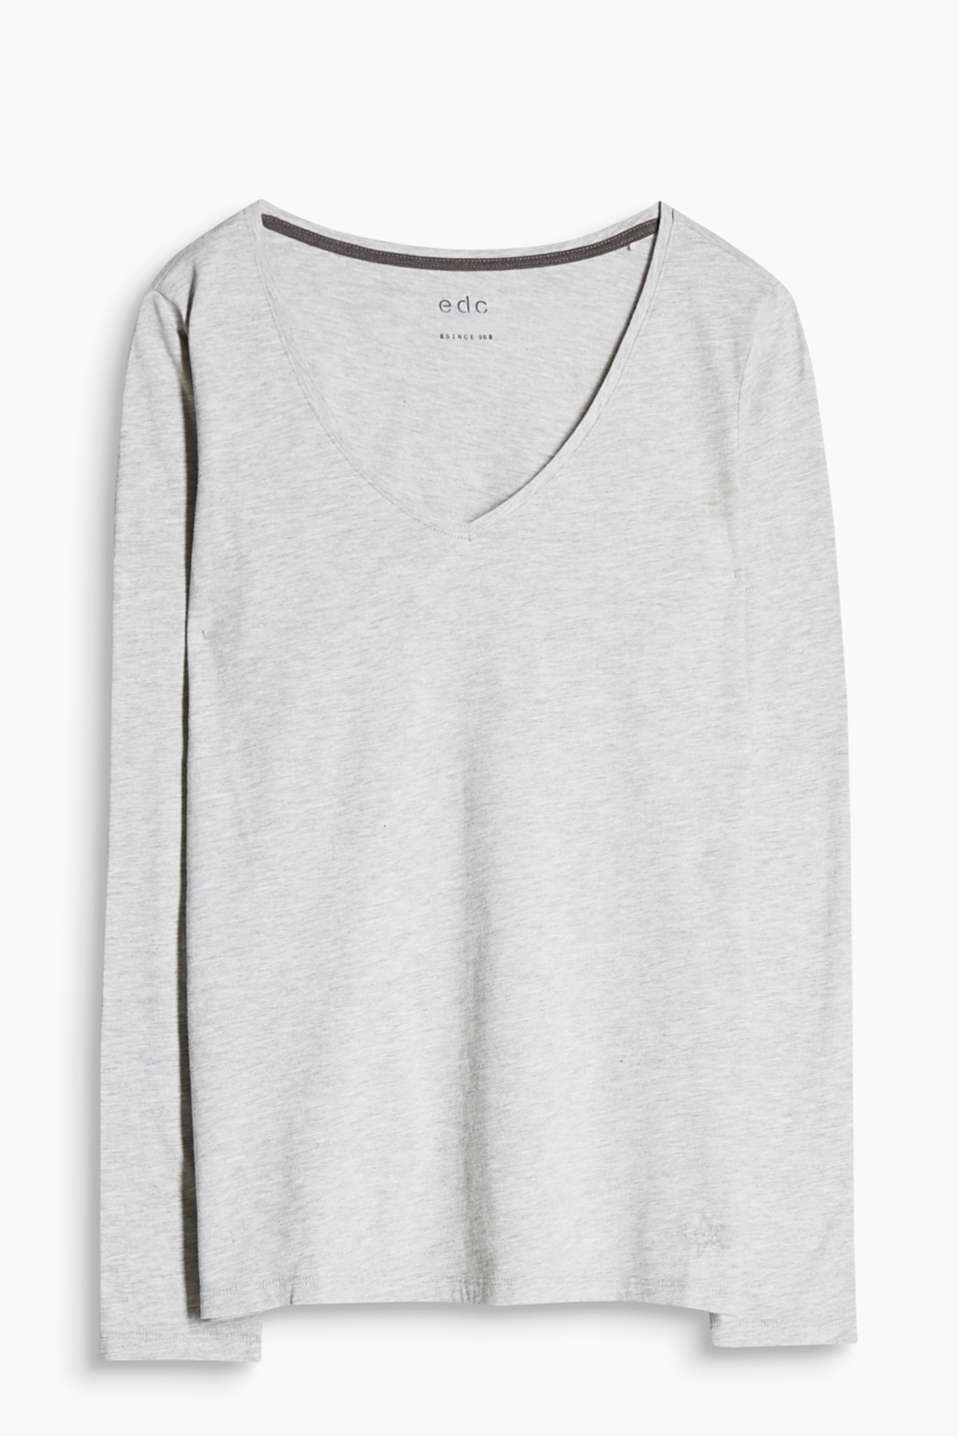 Flowing, melange long sleeve top with a V-neckline in a cotton blend